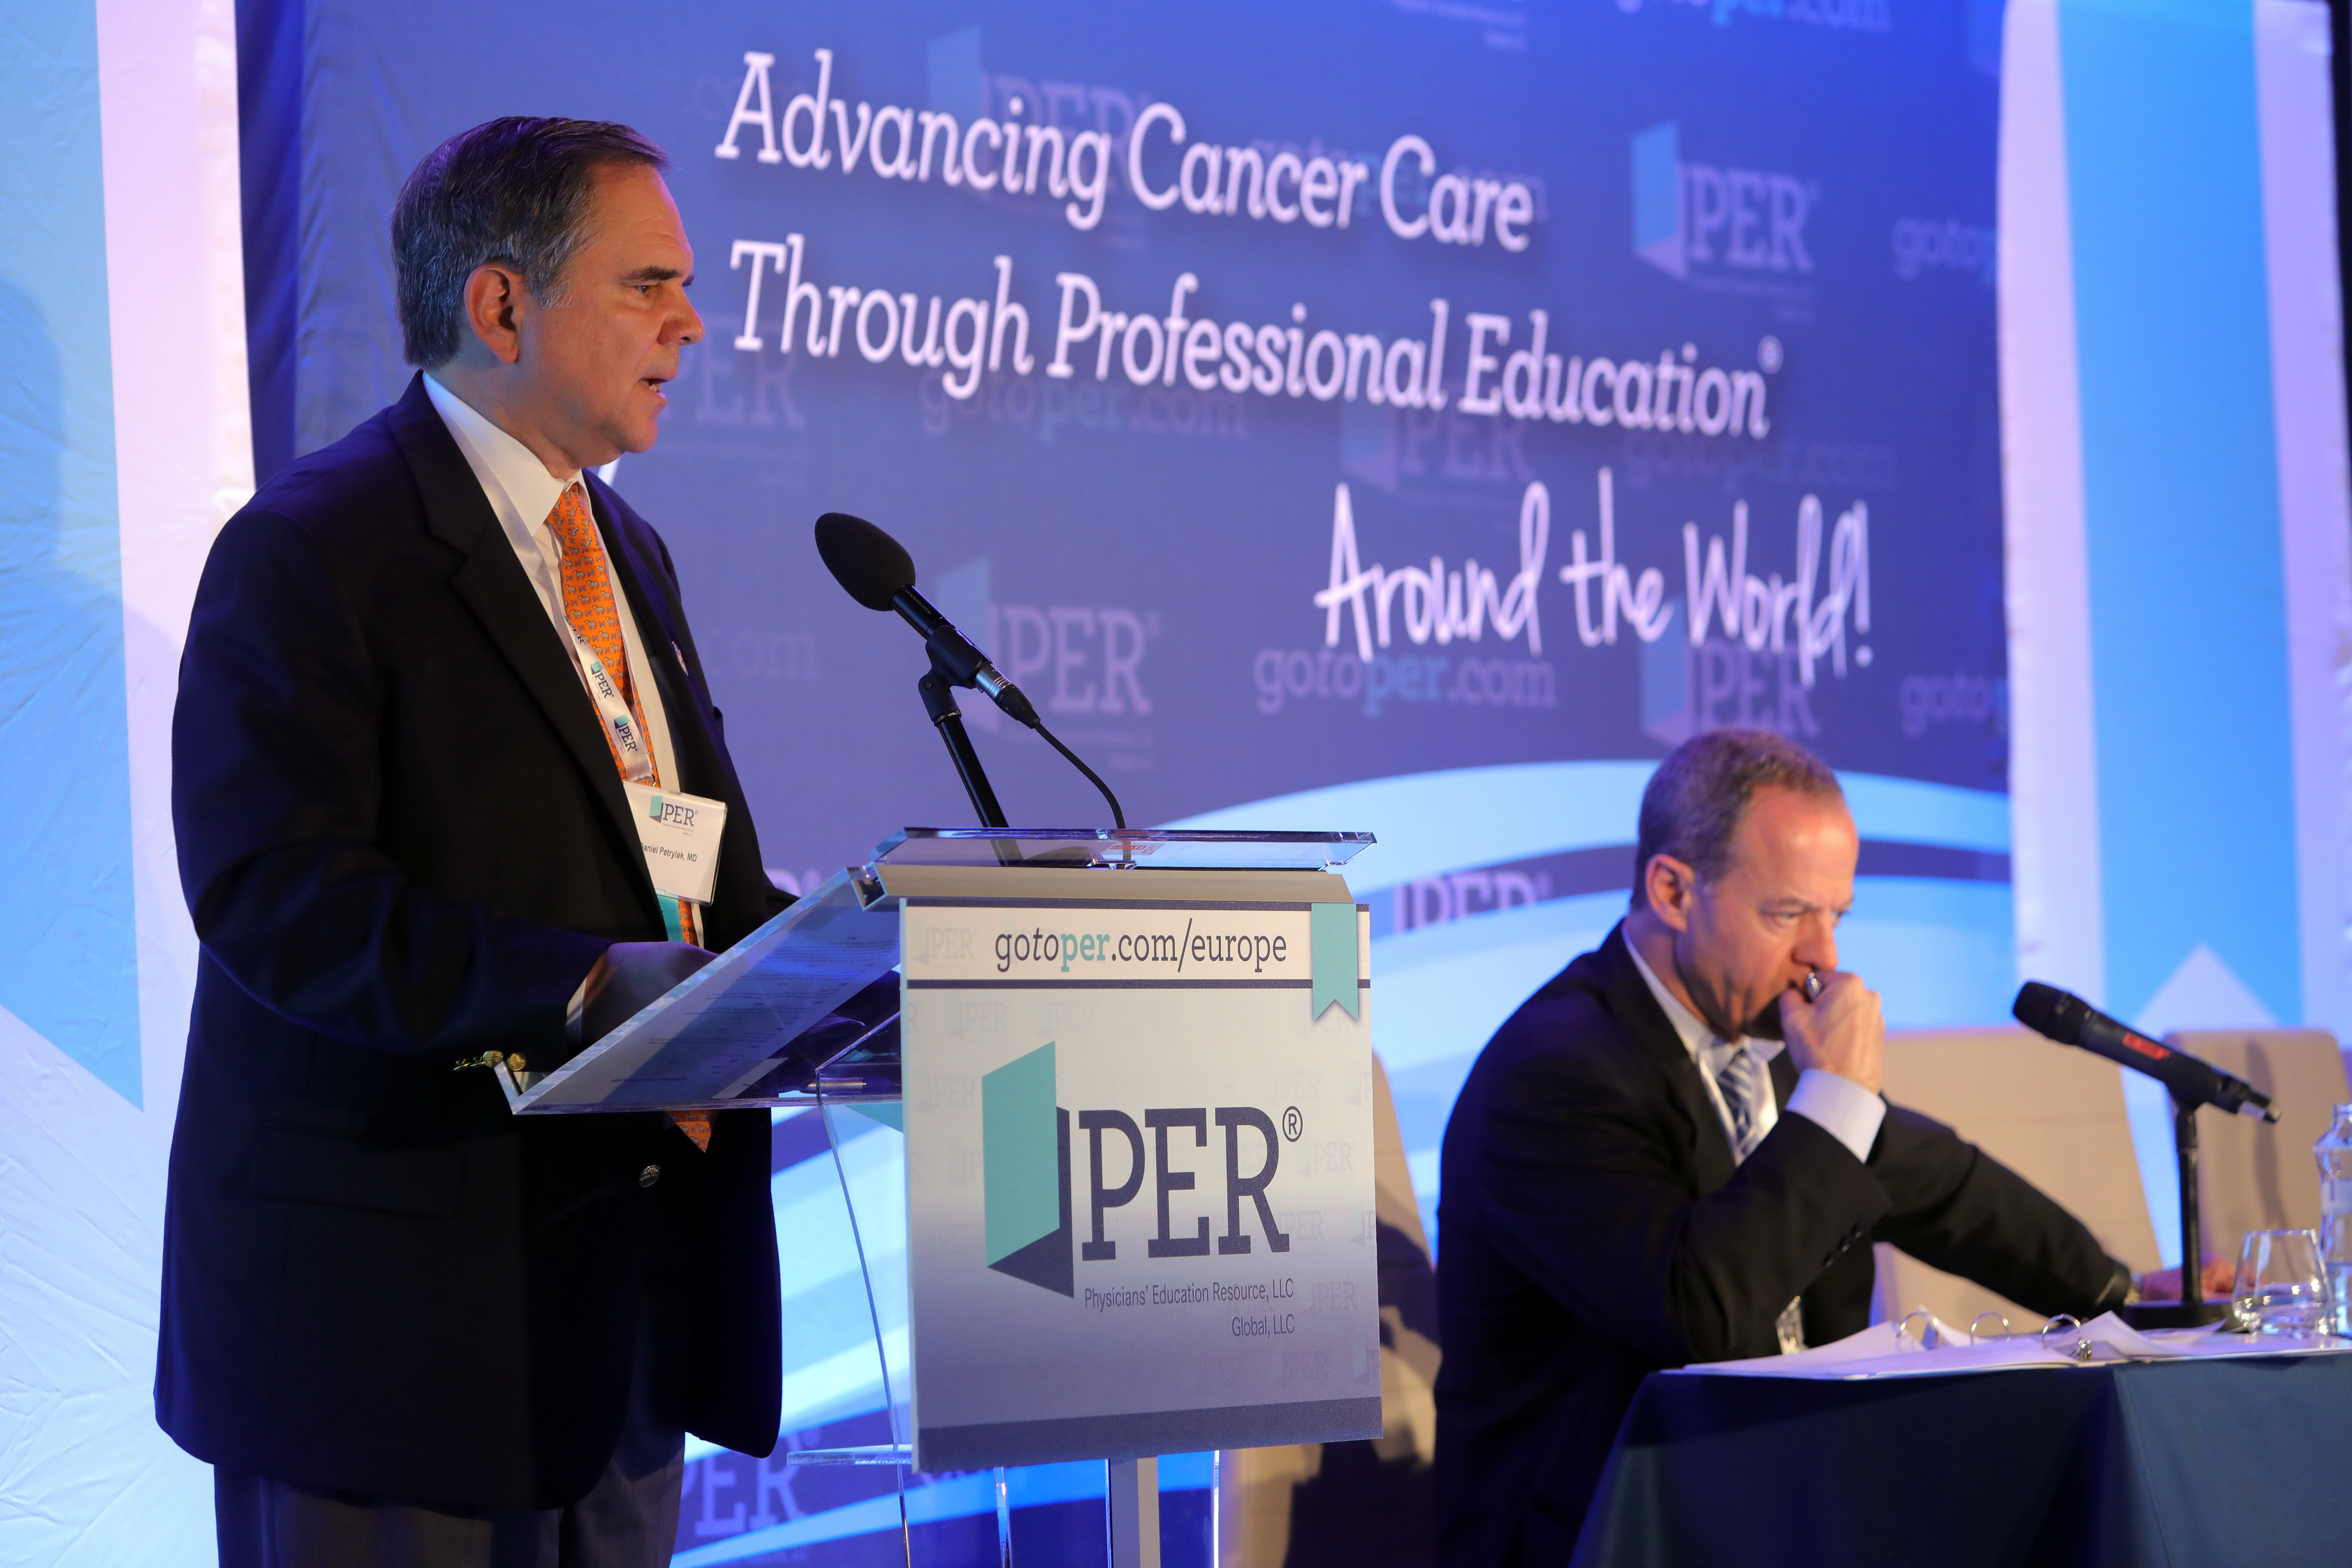 Daniel P. Petrylak, MD and Joaquim Bellmunt, MD, PhD